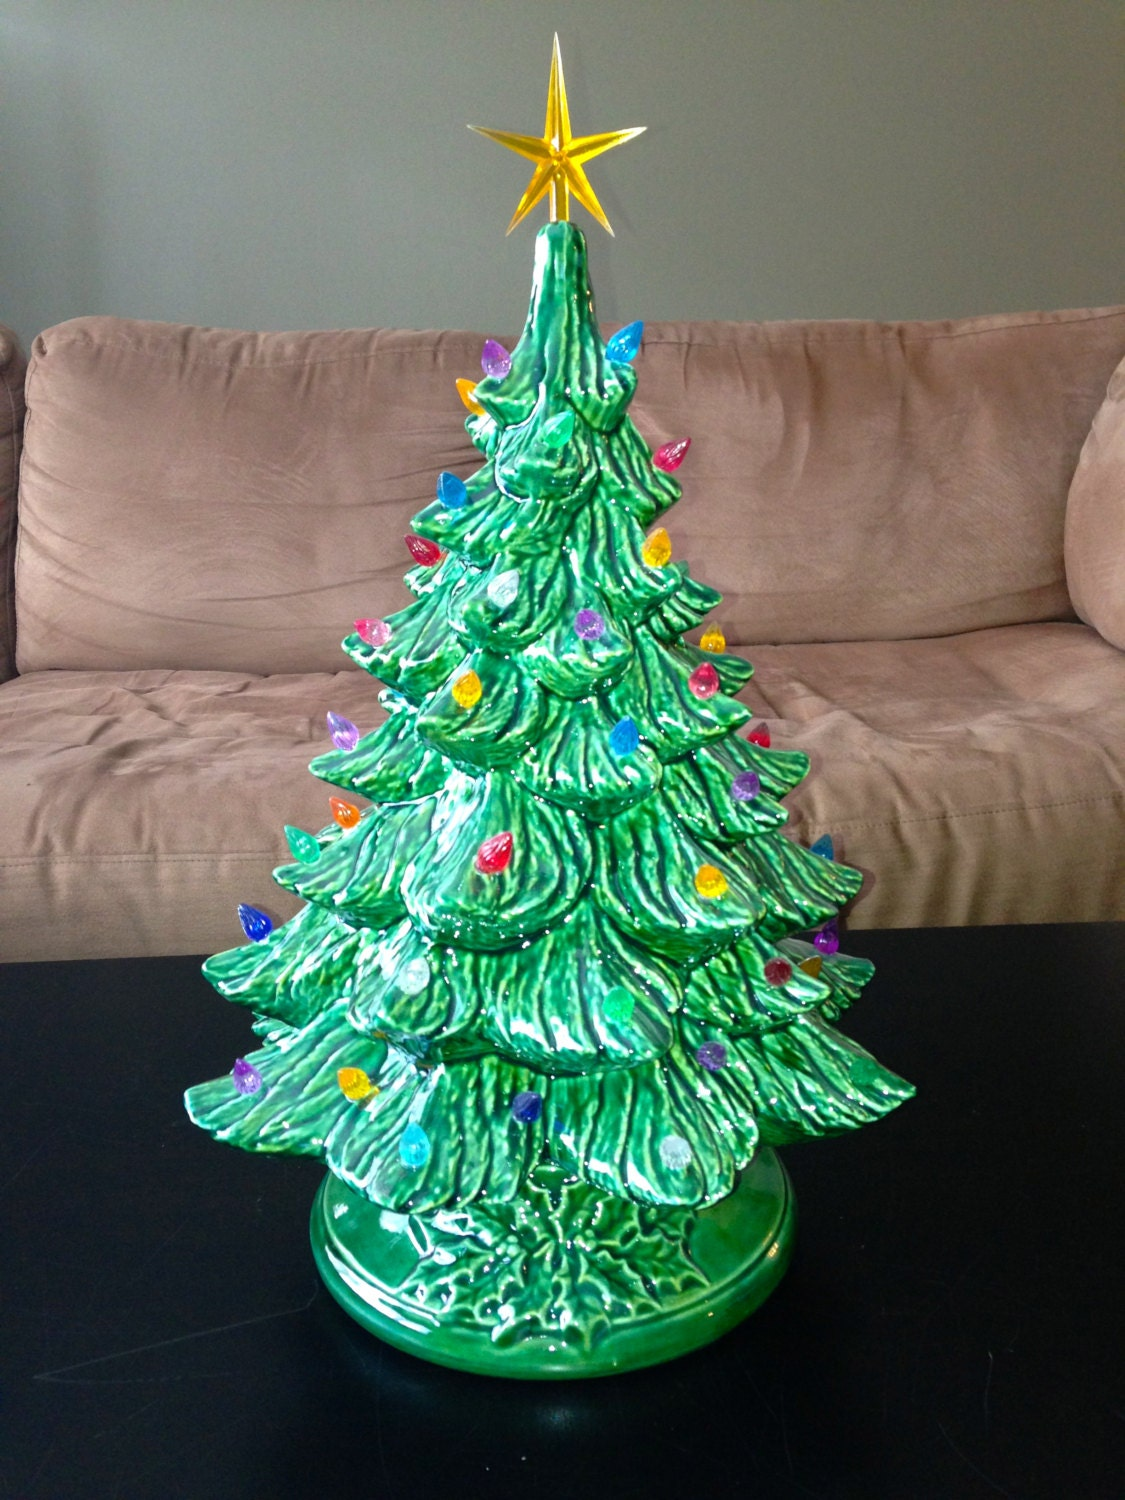 Christmas Pottery Barn Knock Offs And Others Too: Large Ceramic Christmas Tree